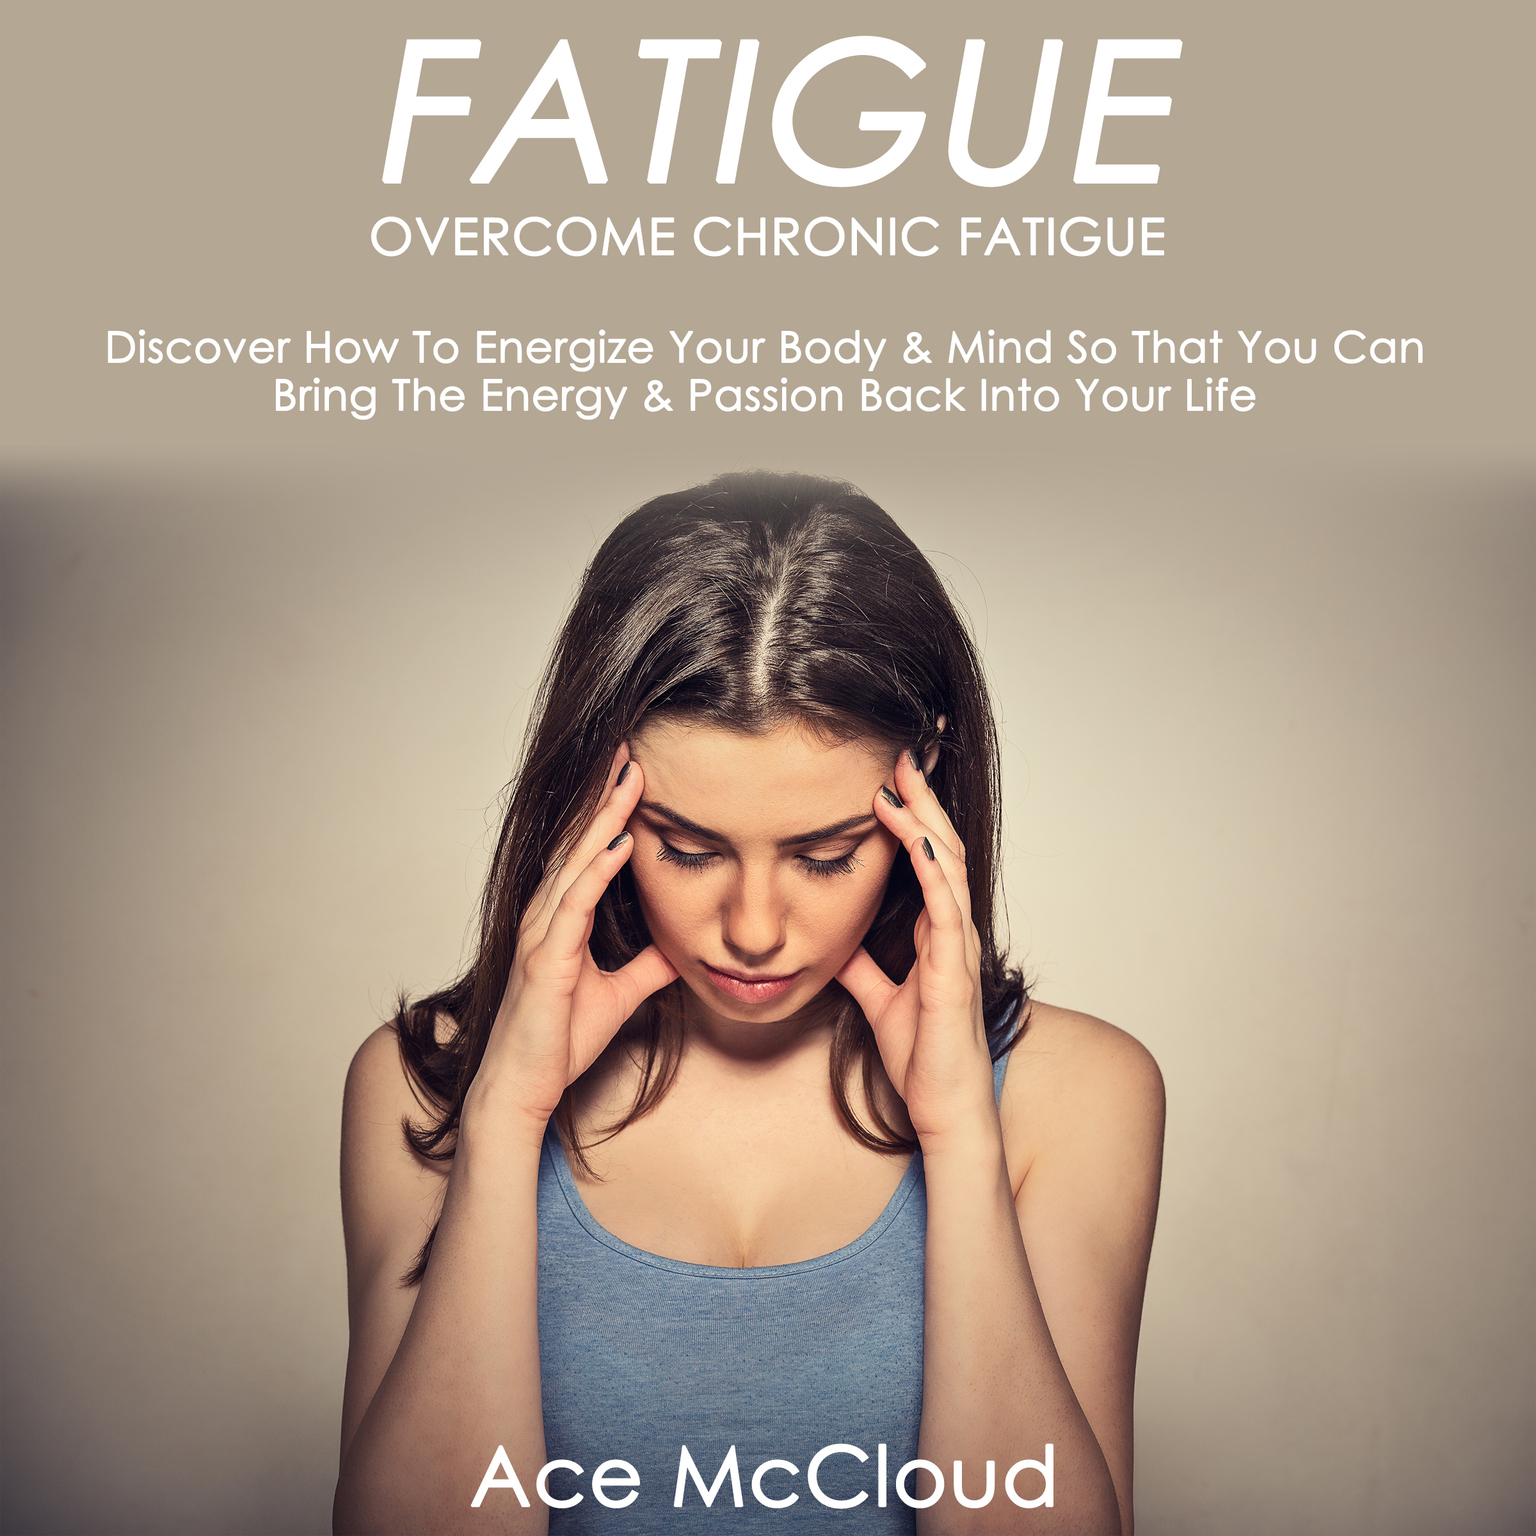 Fatigue: Overcome Chronic Fatigue: Discover How To Energize Your Body & Mind So That You Can Bring The Energy & Passion Back Into Your Life Audiobook, by Ace McCloud